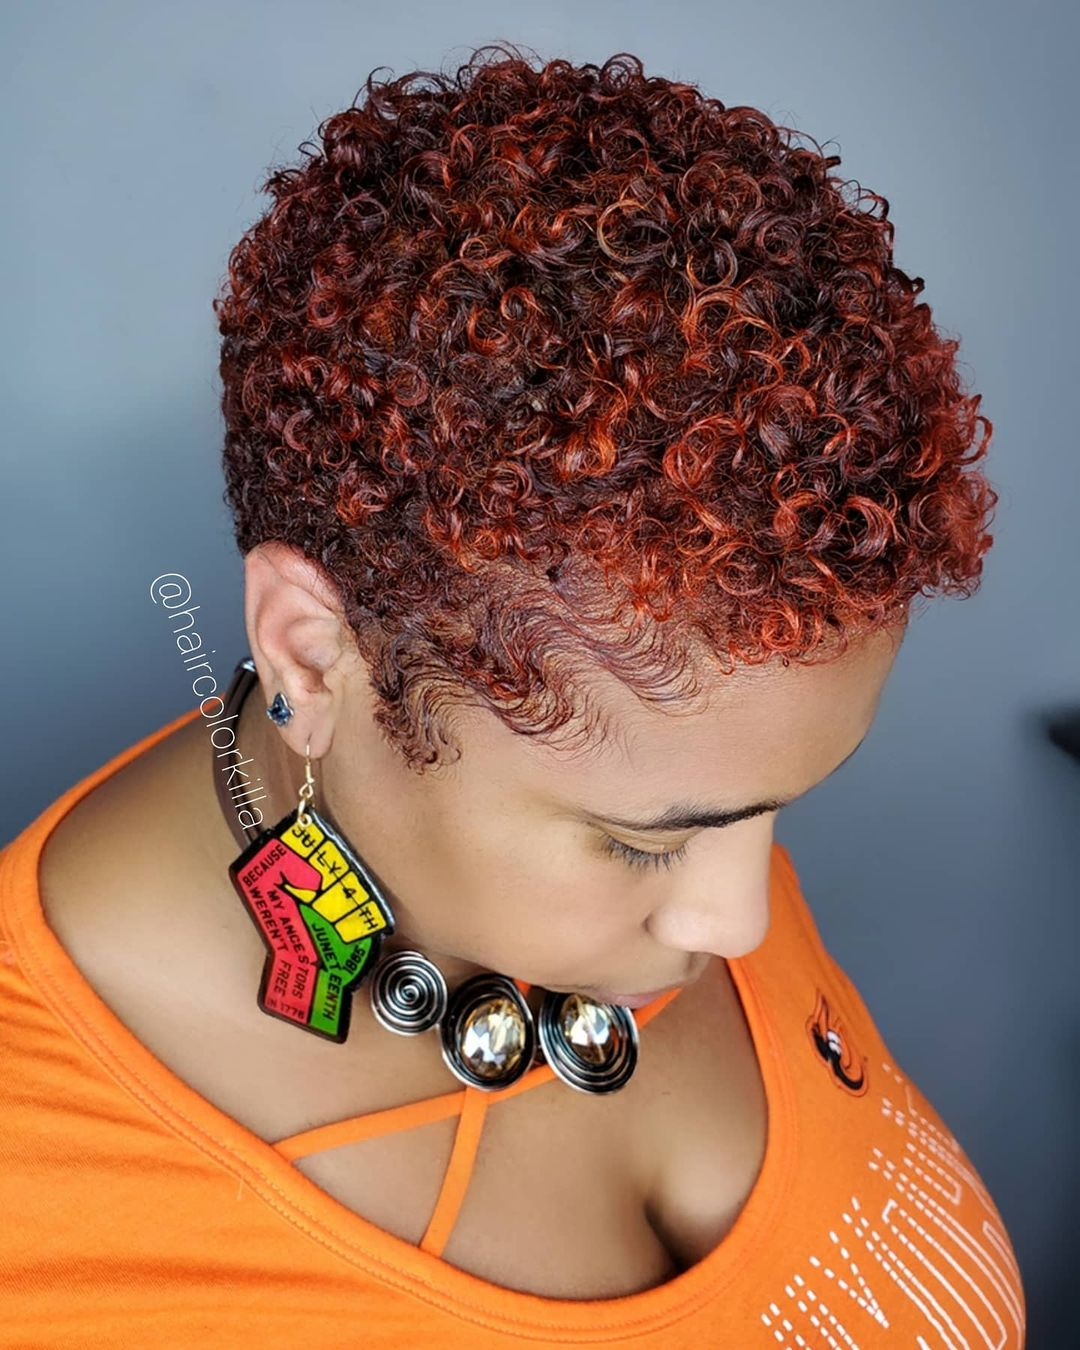 Short Afro Hair Colored Deep Red and Copper